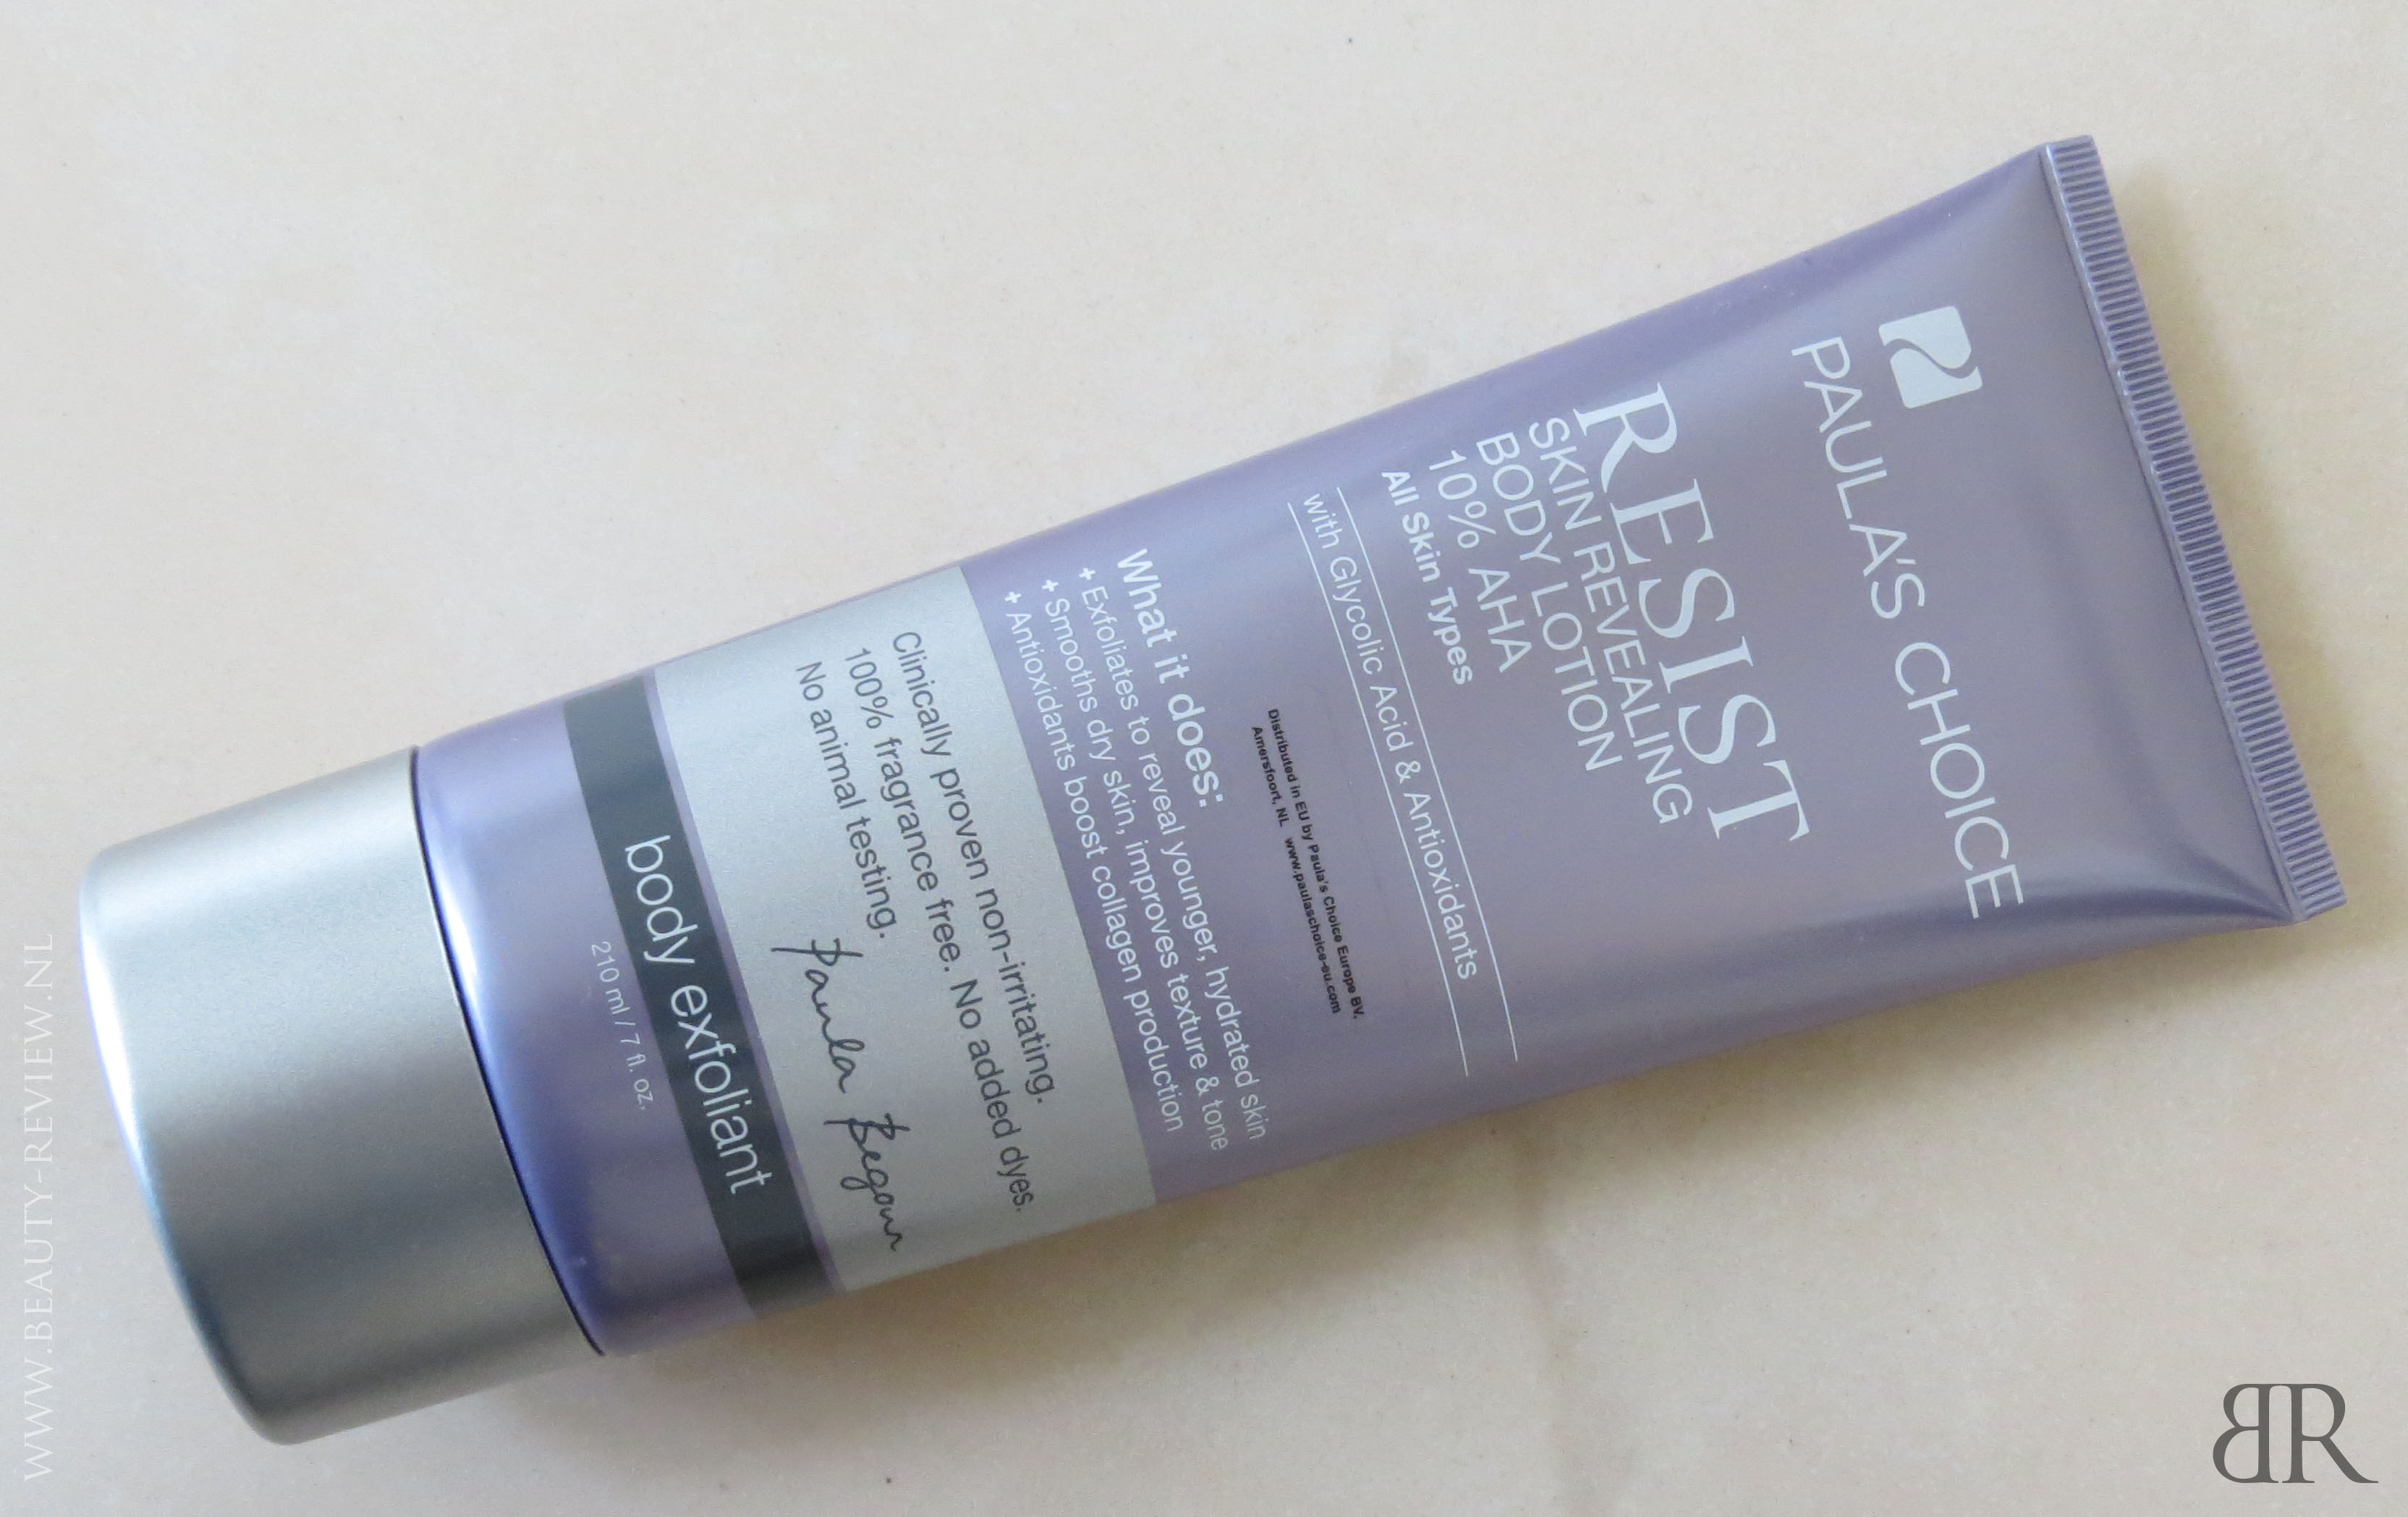 RESIST Skin Revealing Body Lotion 10 procent AHA